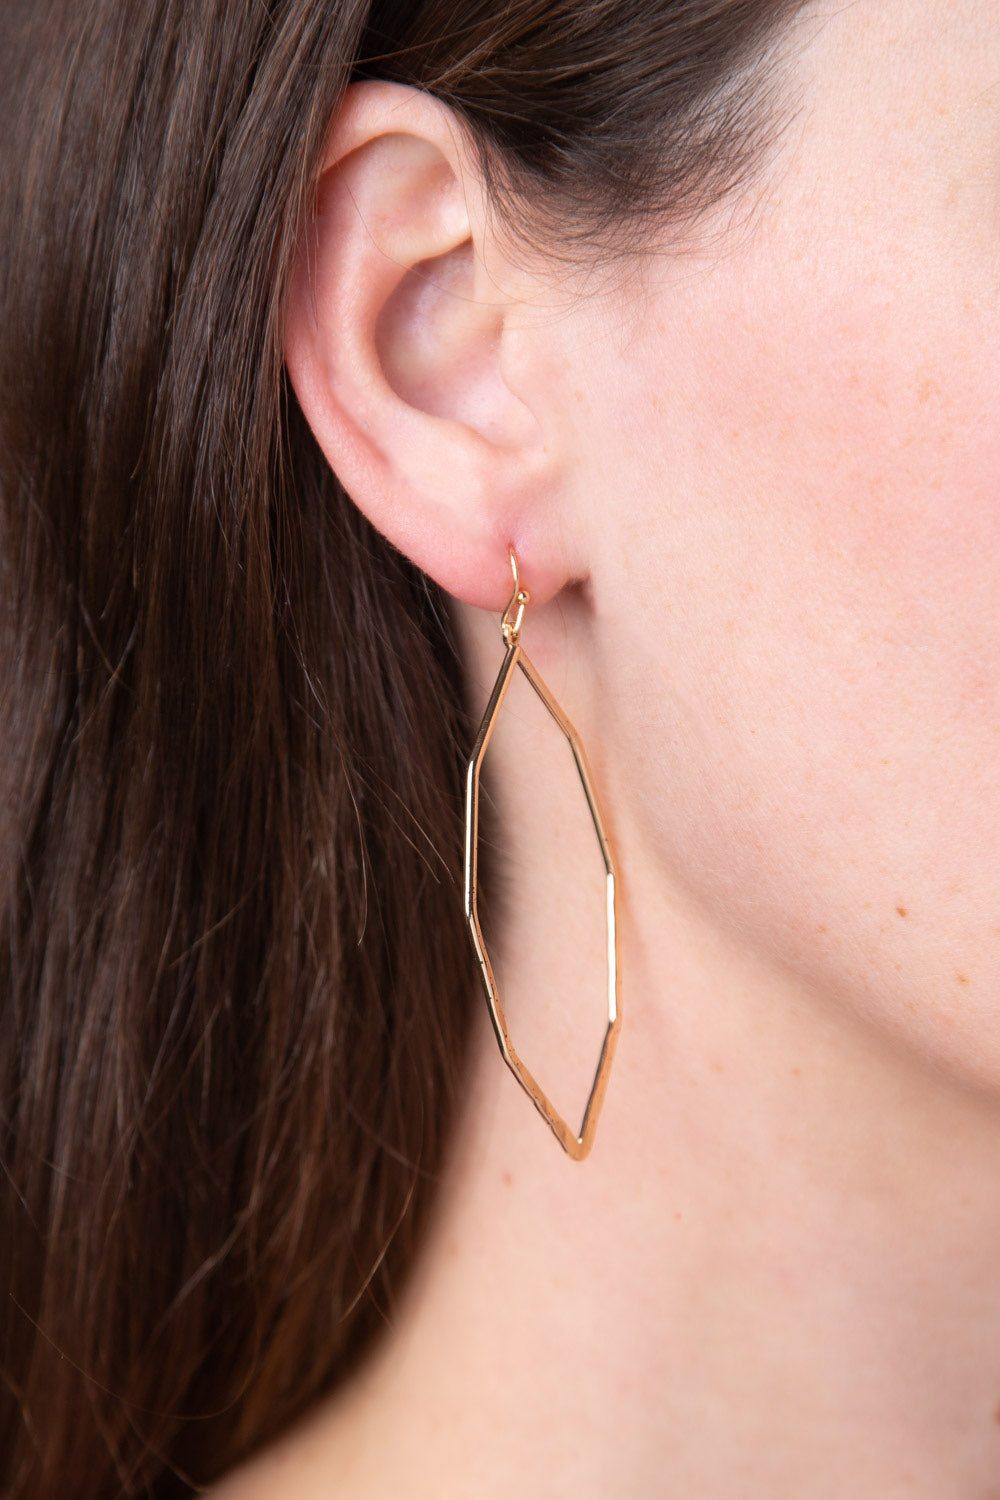 Type 3 Wide and Yonder Earrings